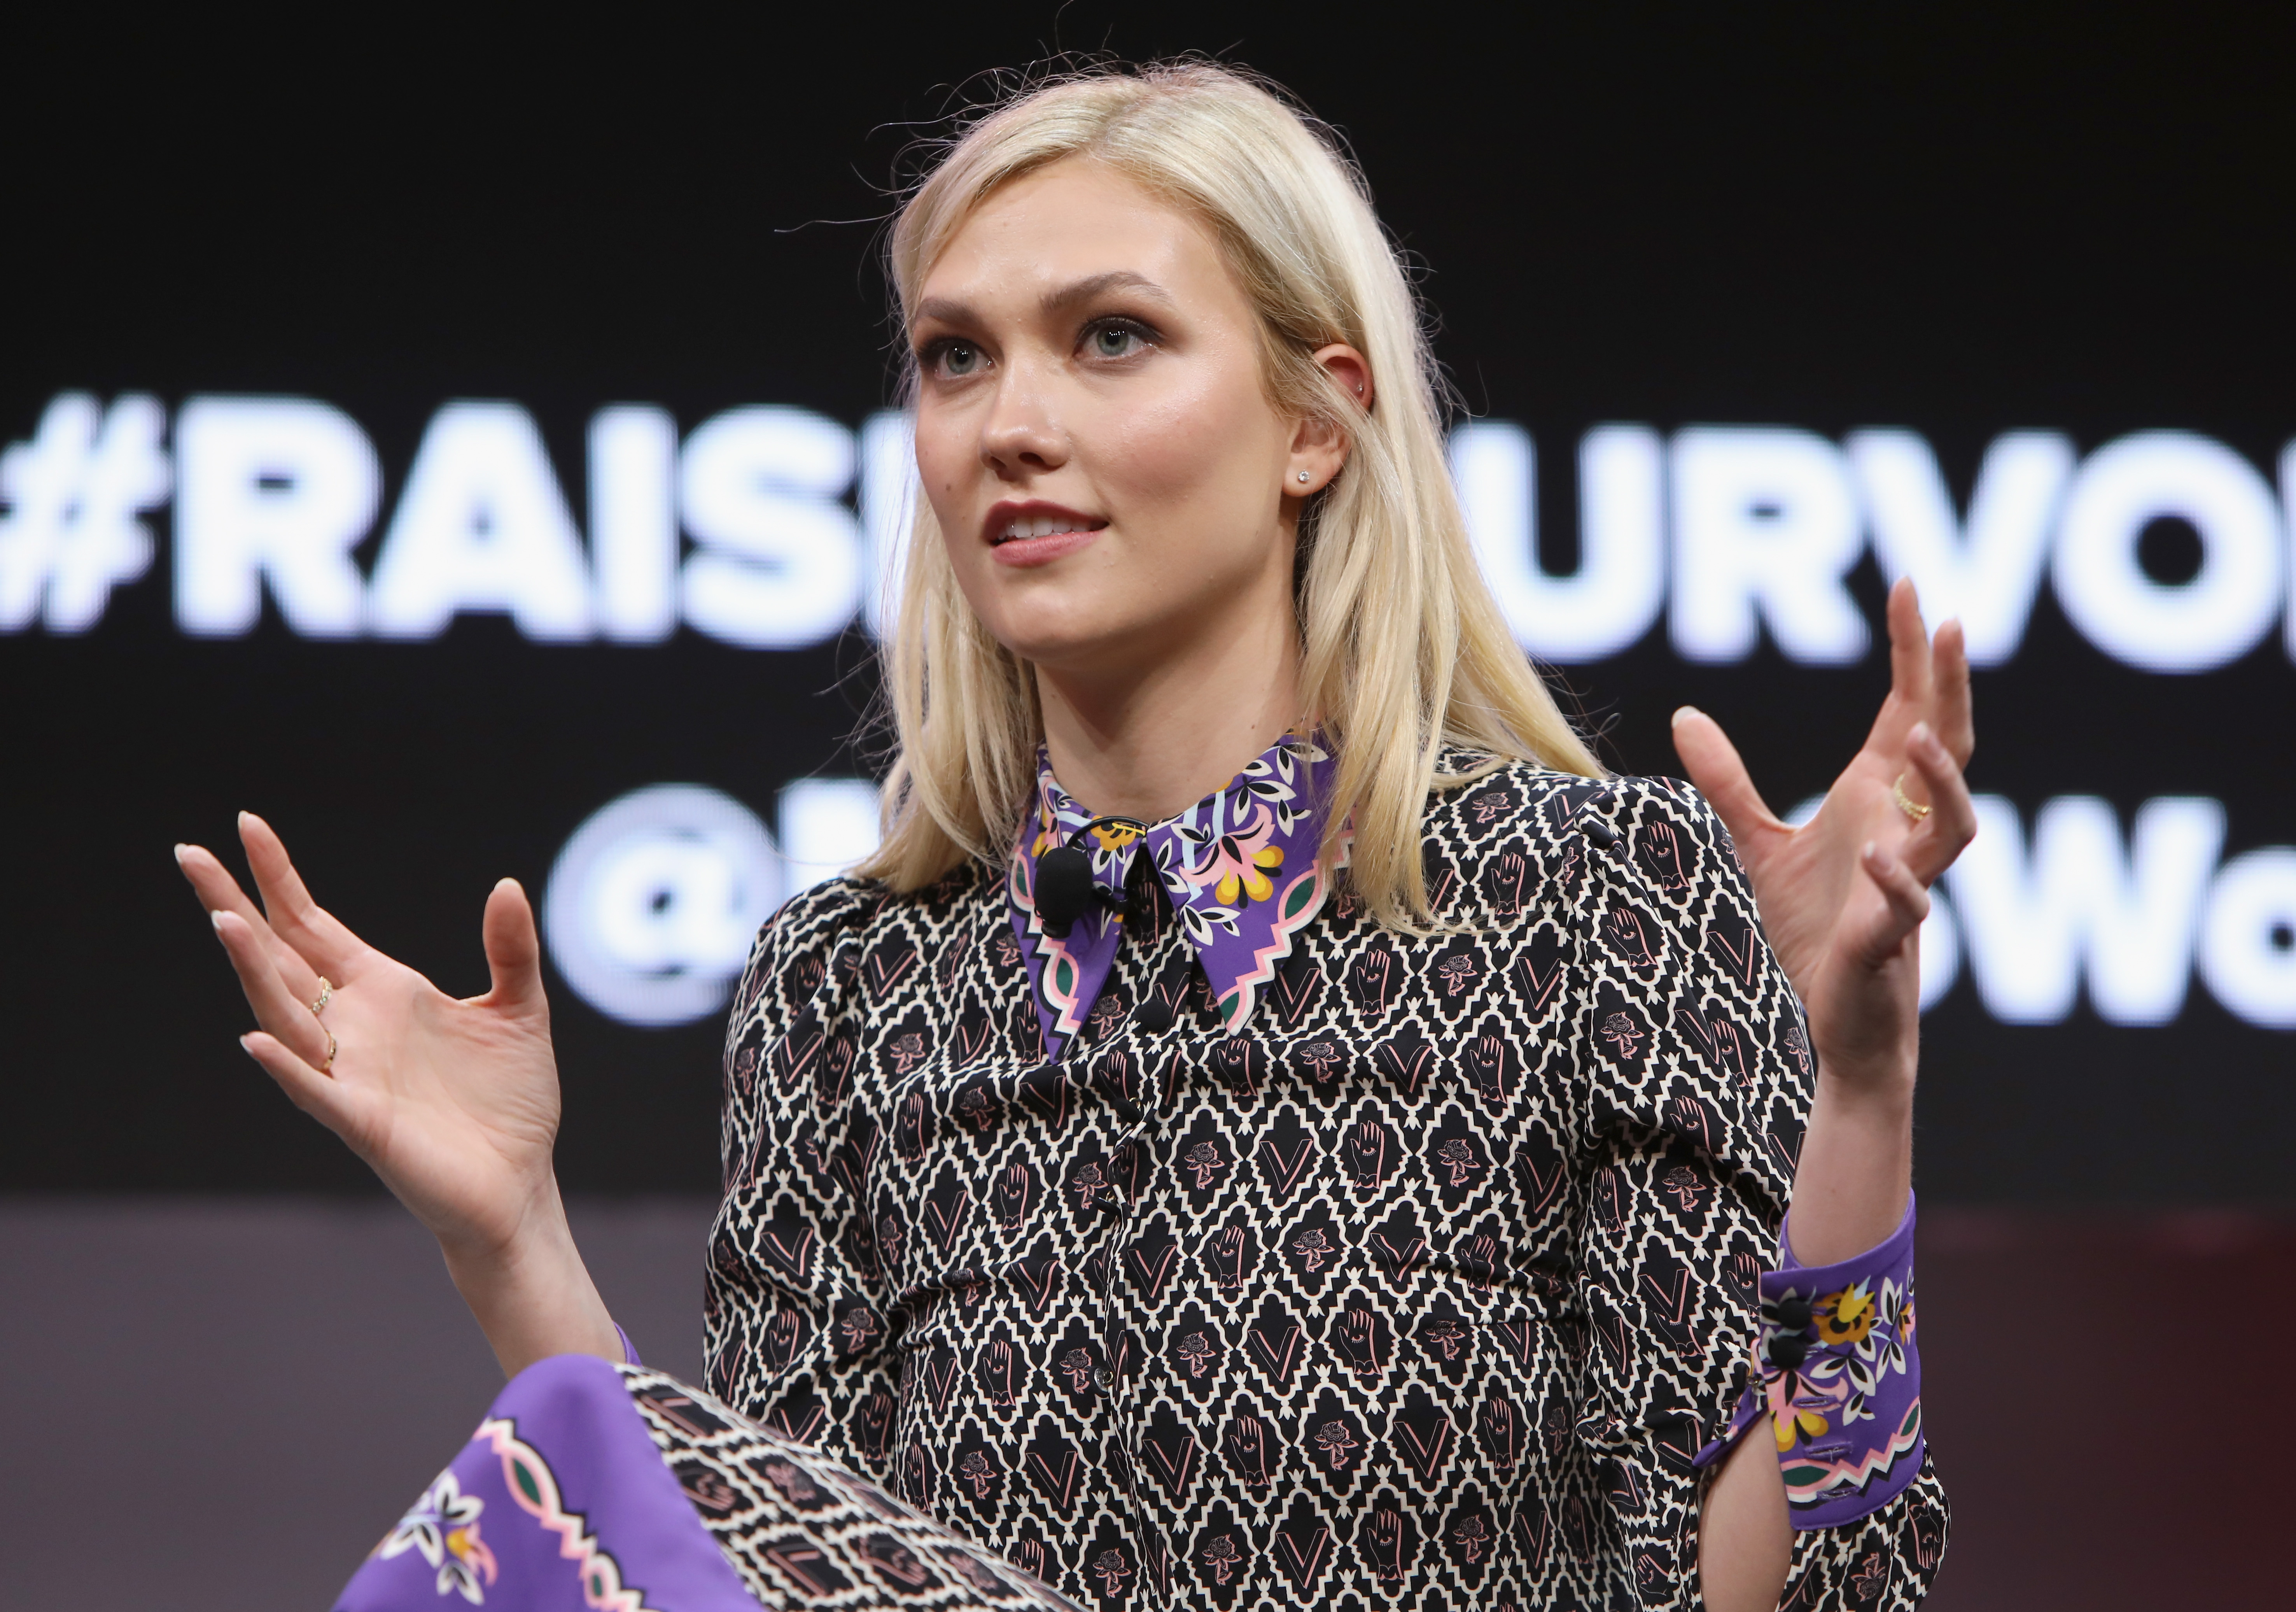 Karlie Kloss speaks onstage during The 2018 MAKERS Conference at NeueHouse Hollywood on February 6, 2018 in Los Angeles, California.